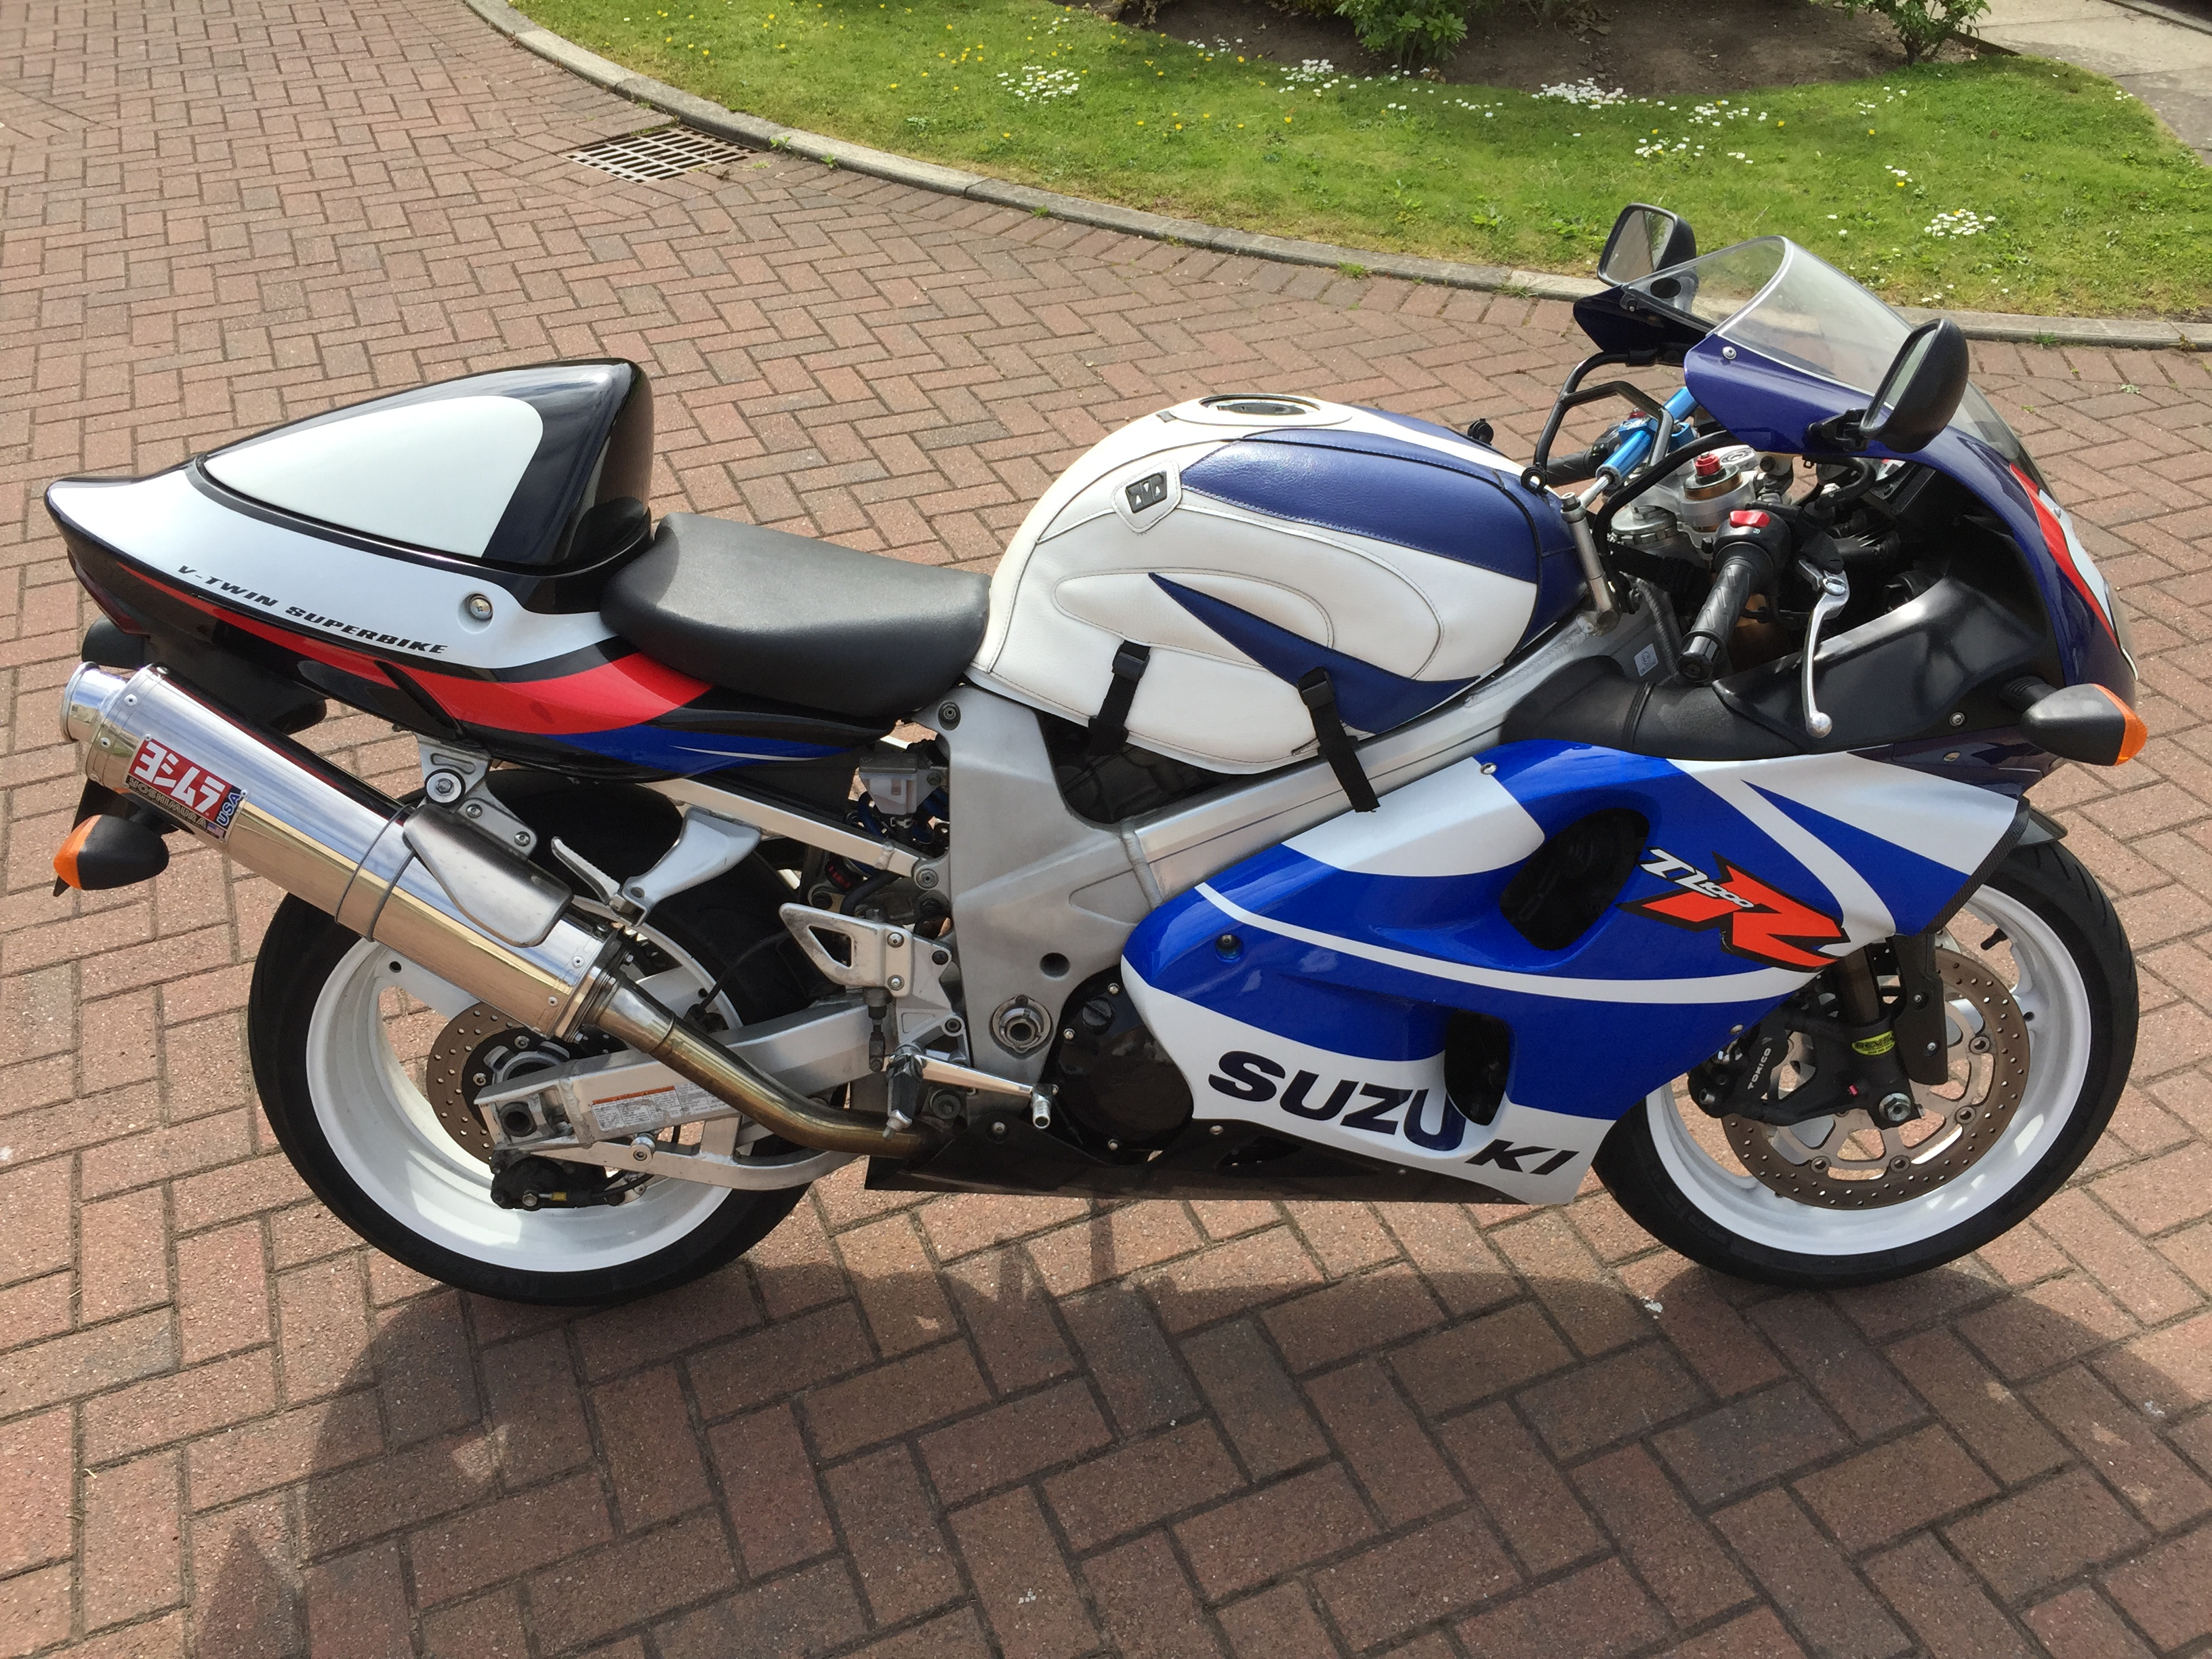 TL1000R For Sale 2000 Yoshi's, GSXR Front End, Wilbers Shock etc